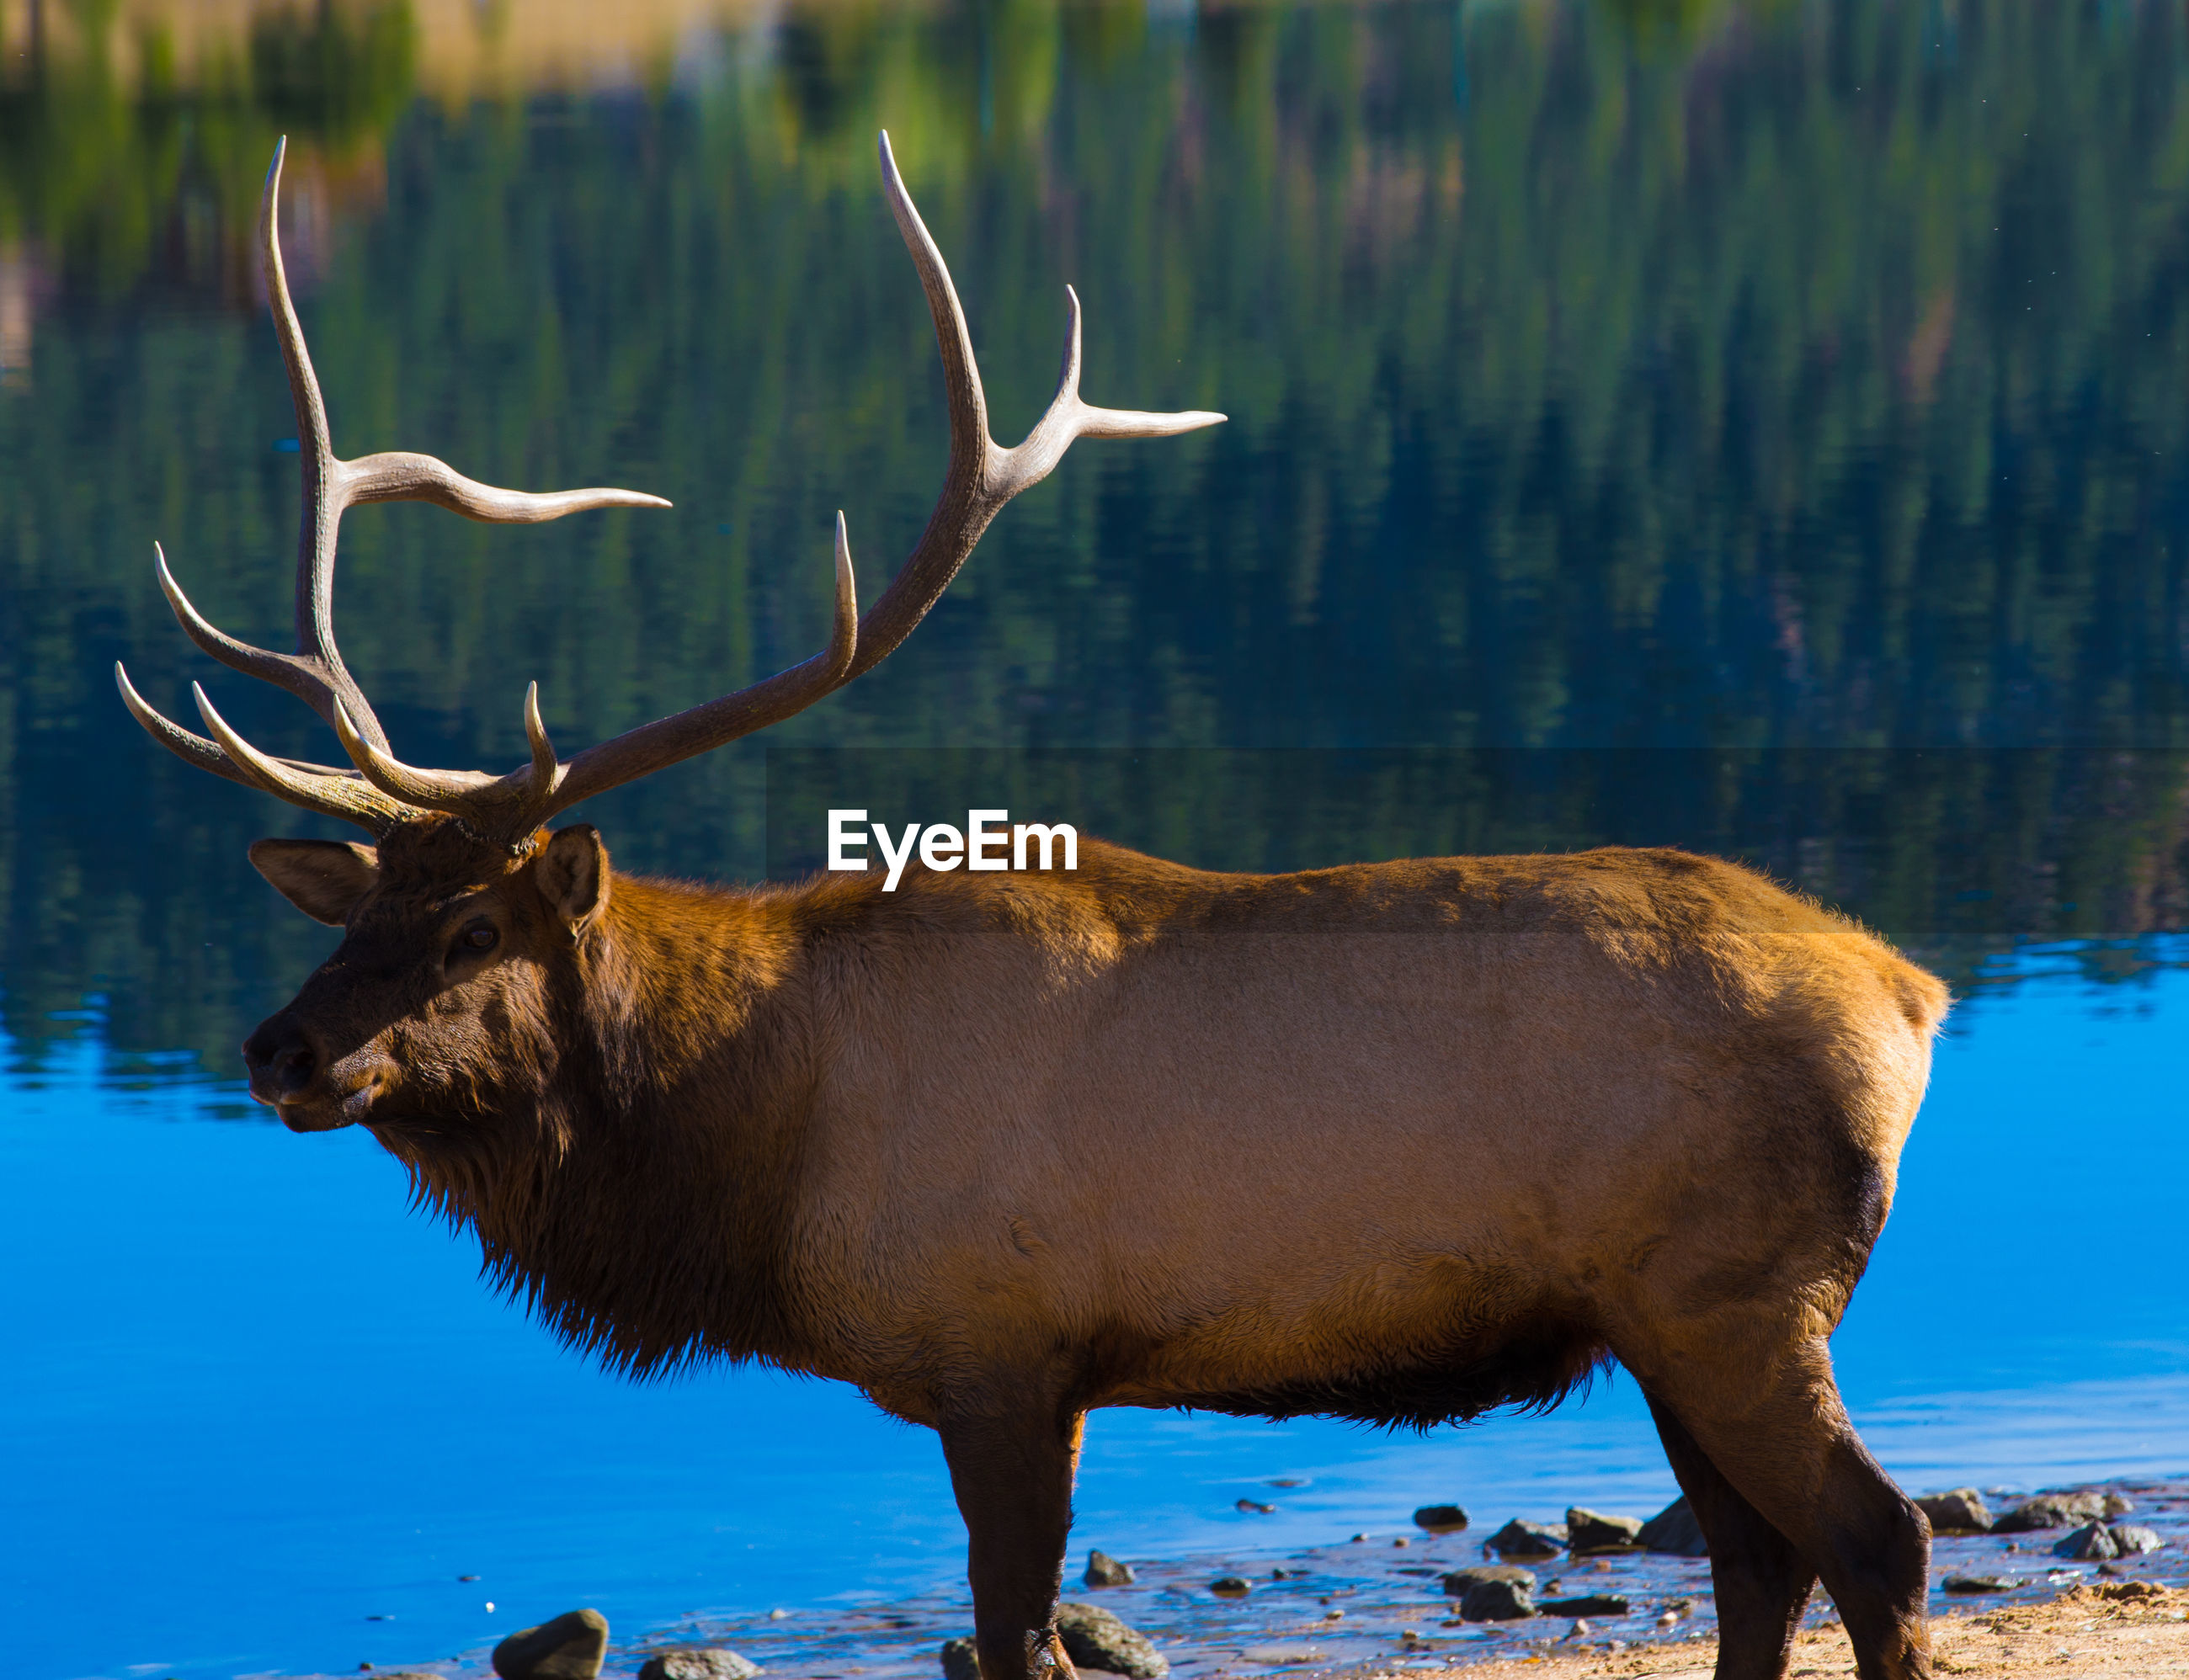 Stag standing by lake